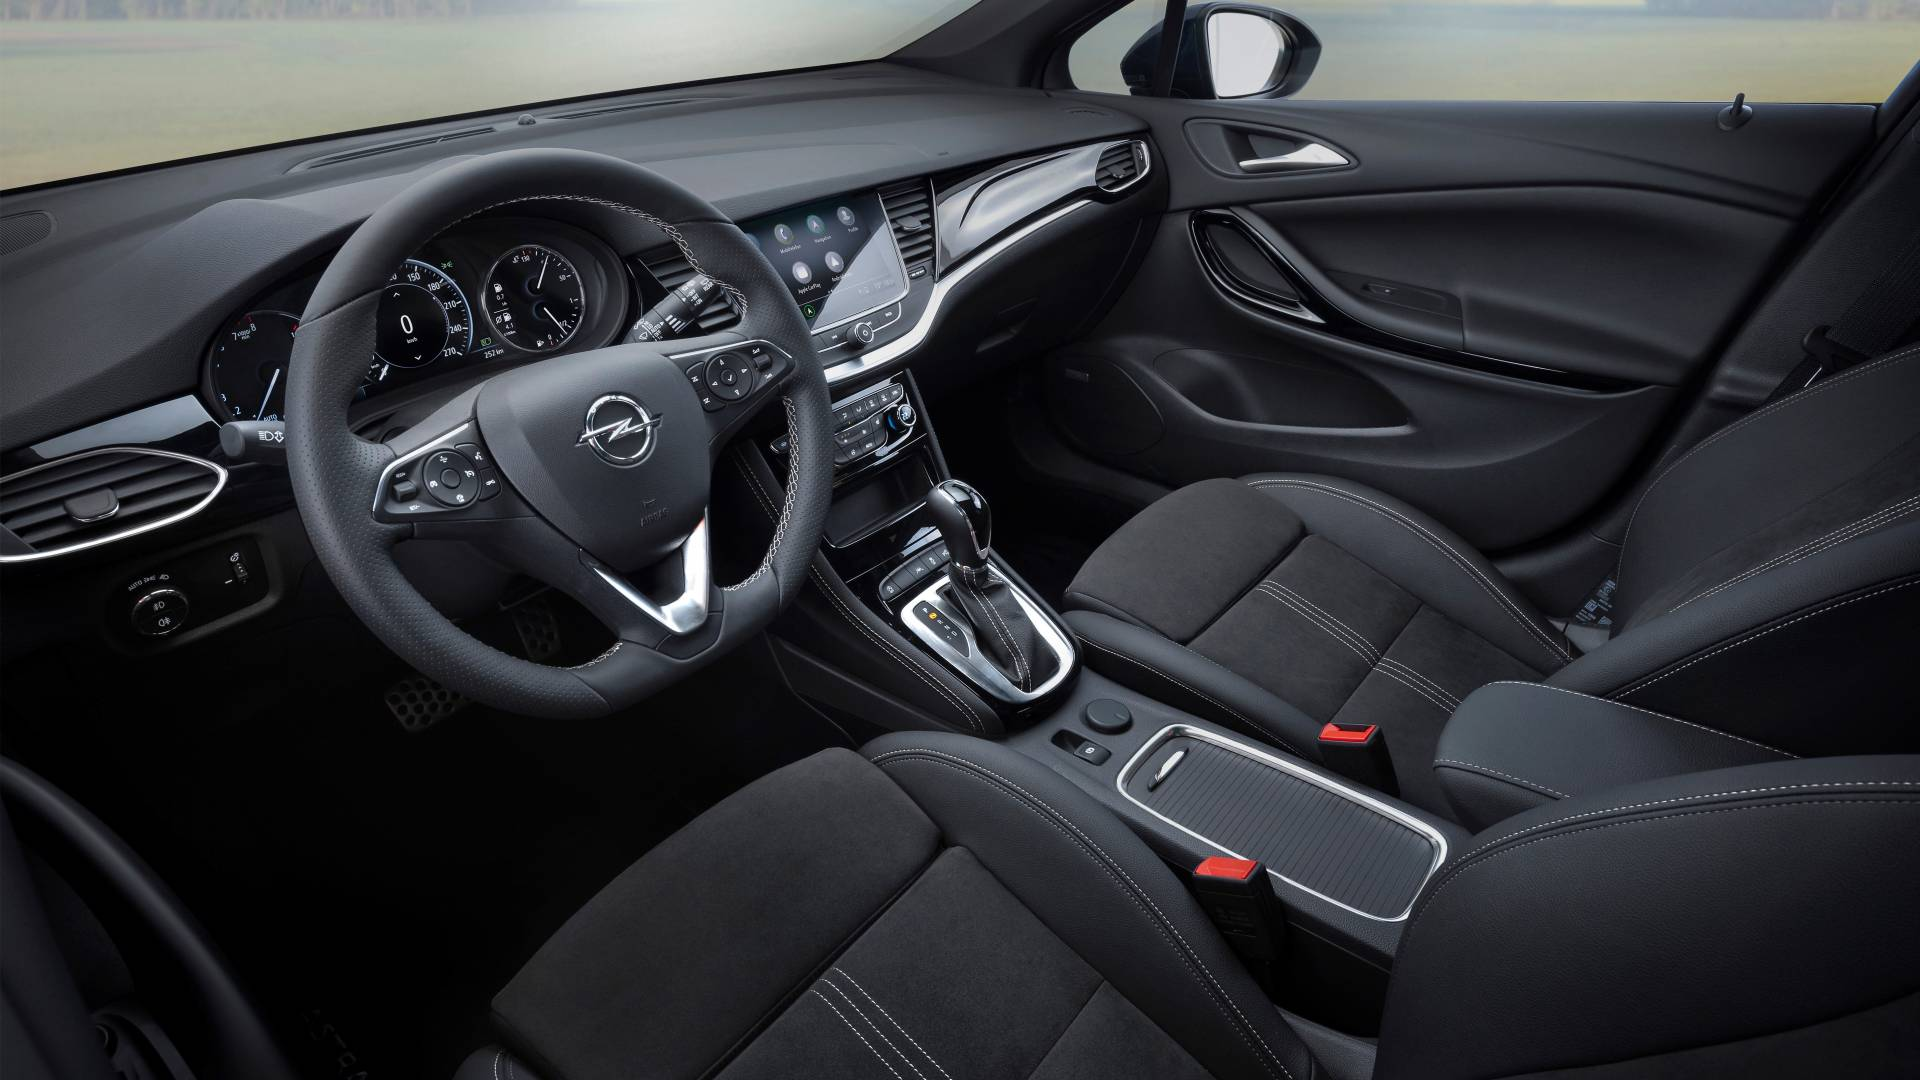 Opel-astra-sports-tourer-interier.jpg